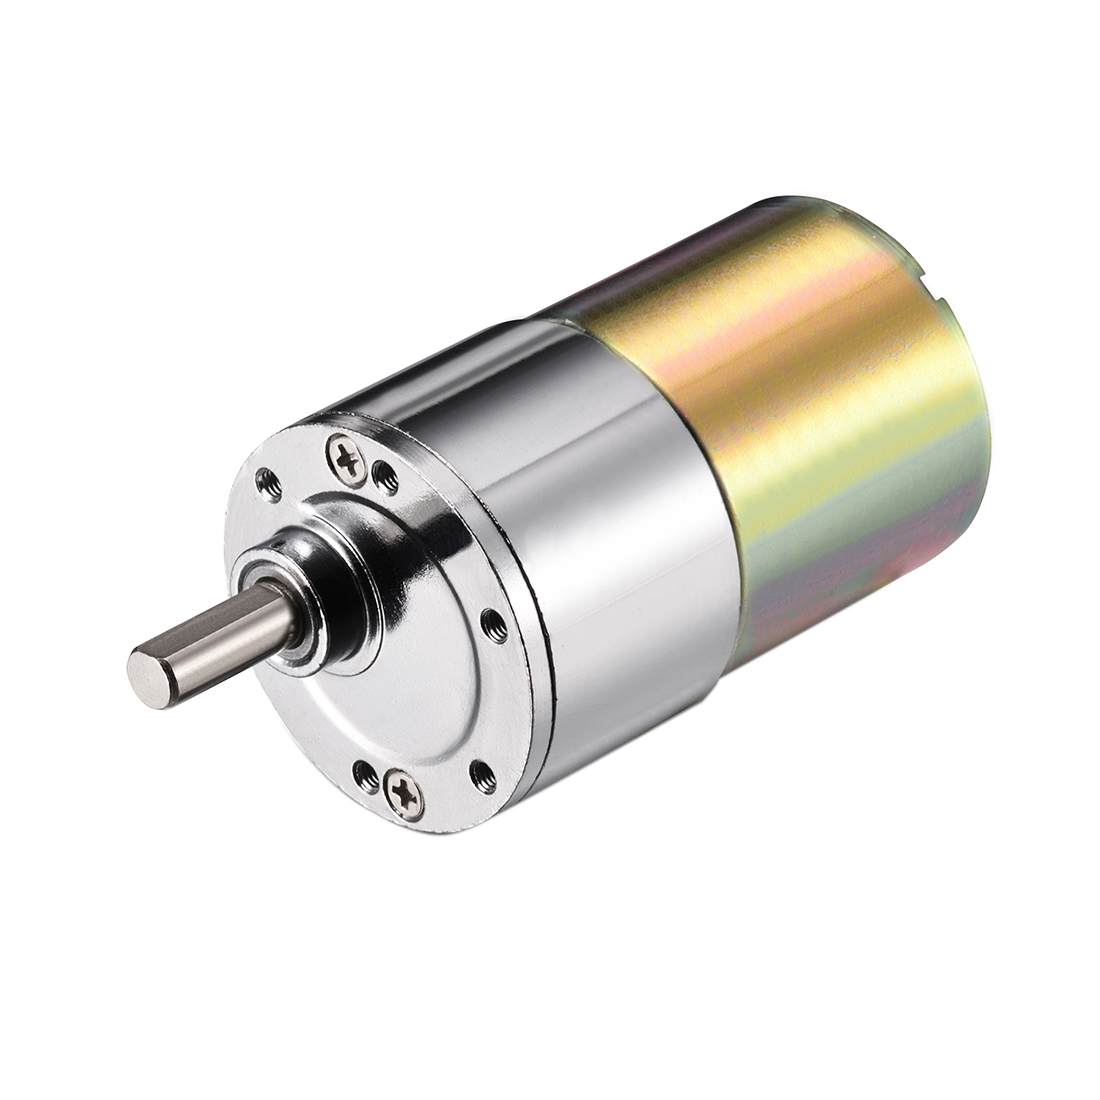 DC 24V 30RPM Micro Gear Box Motor Speed Reduction Electric Gearbox Eccentric Output Shaft